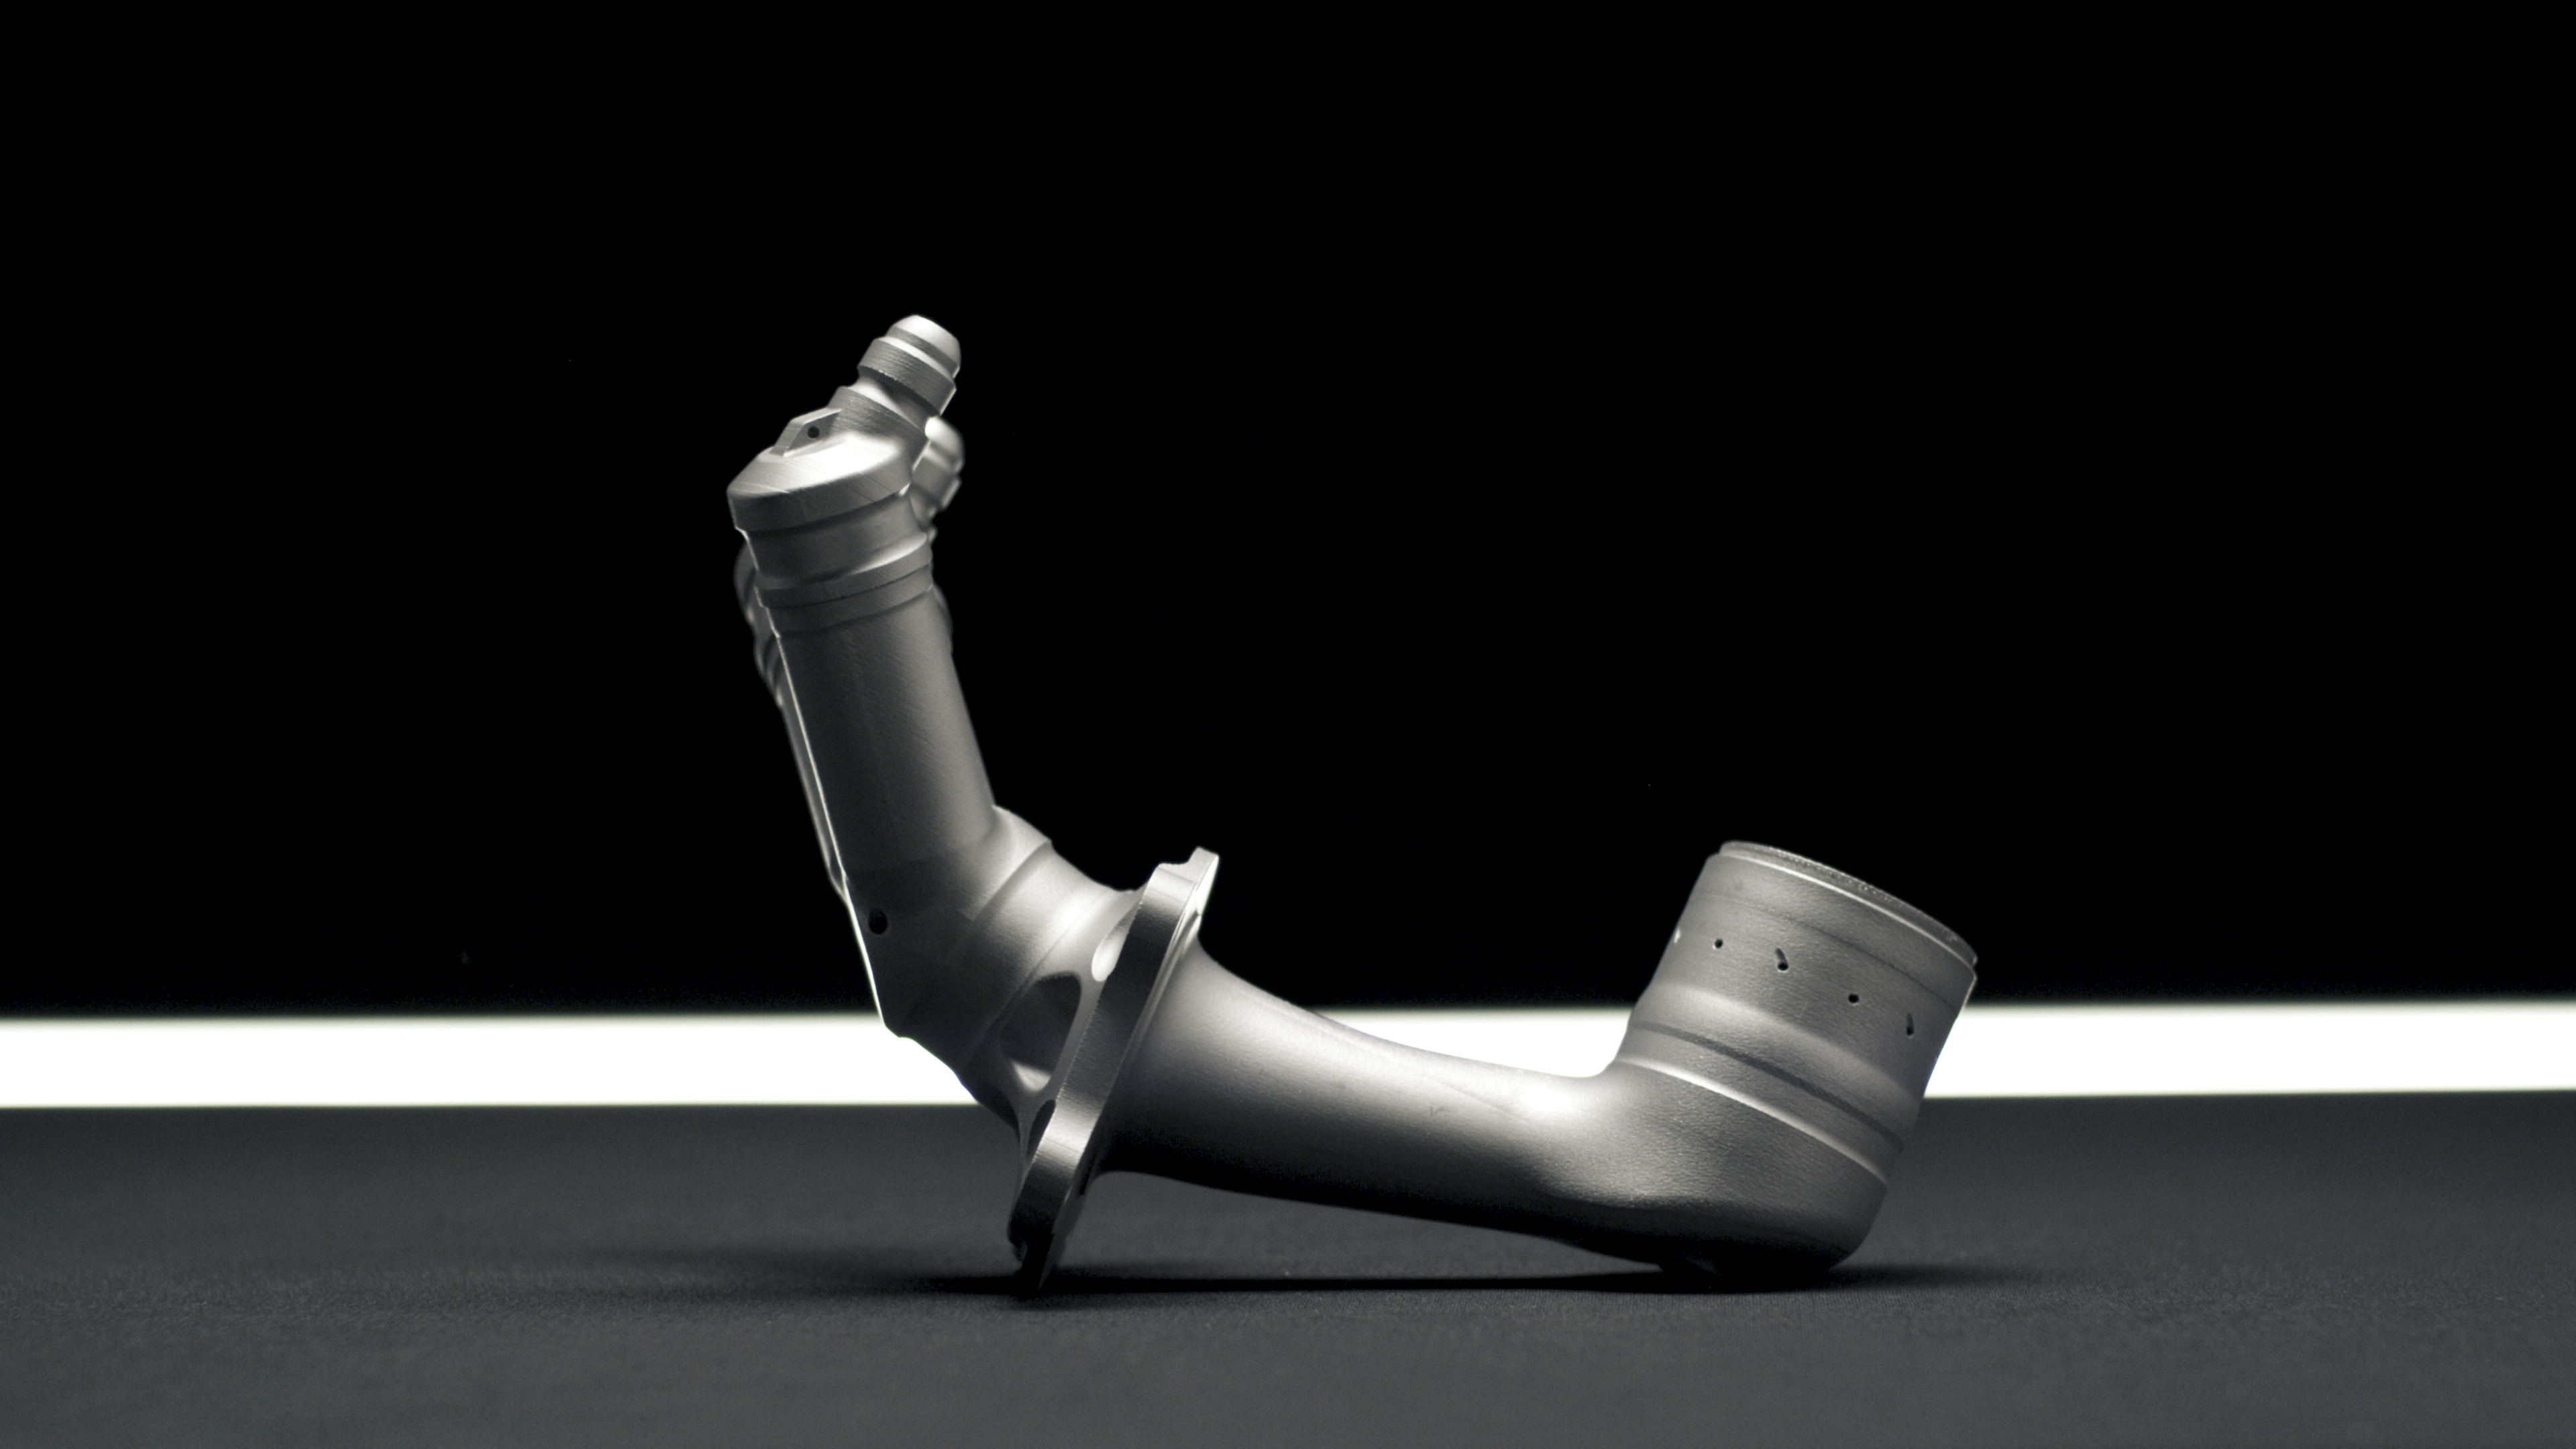 GE's 3D printed fuel nozzle